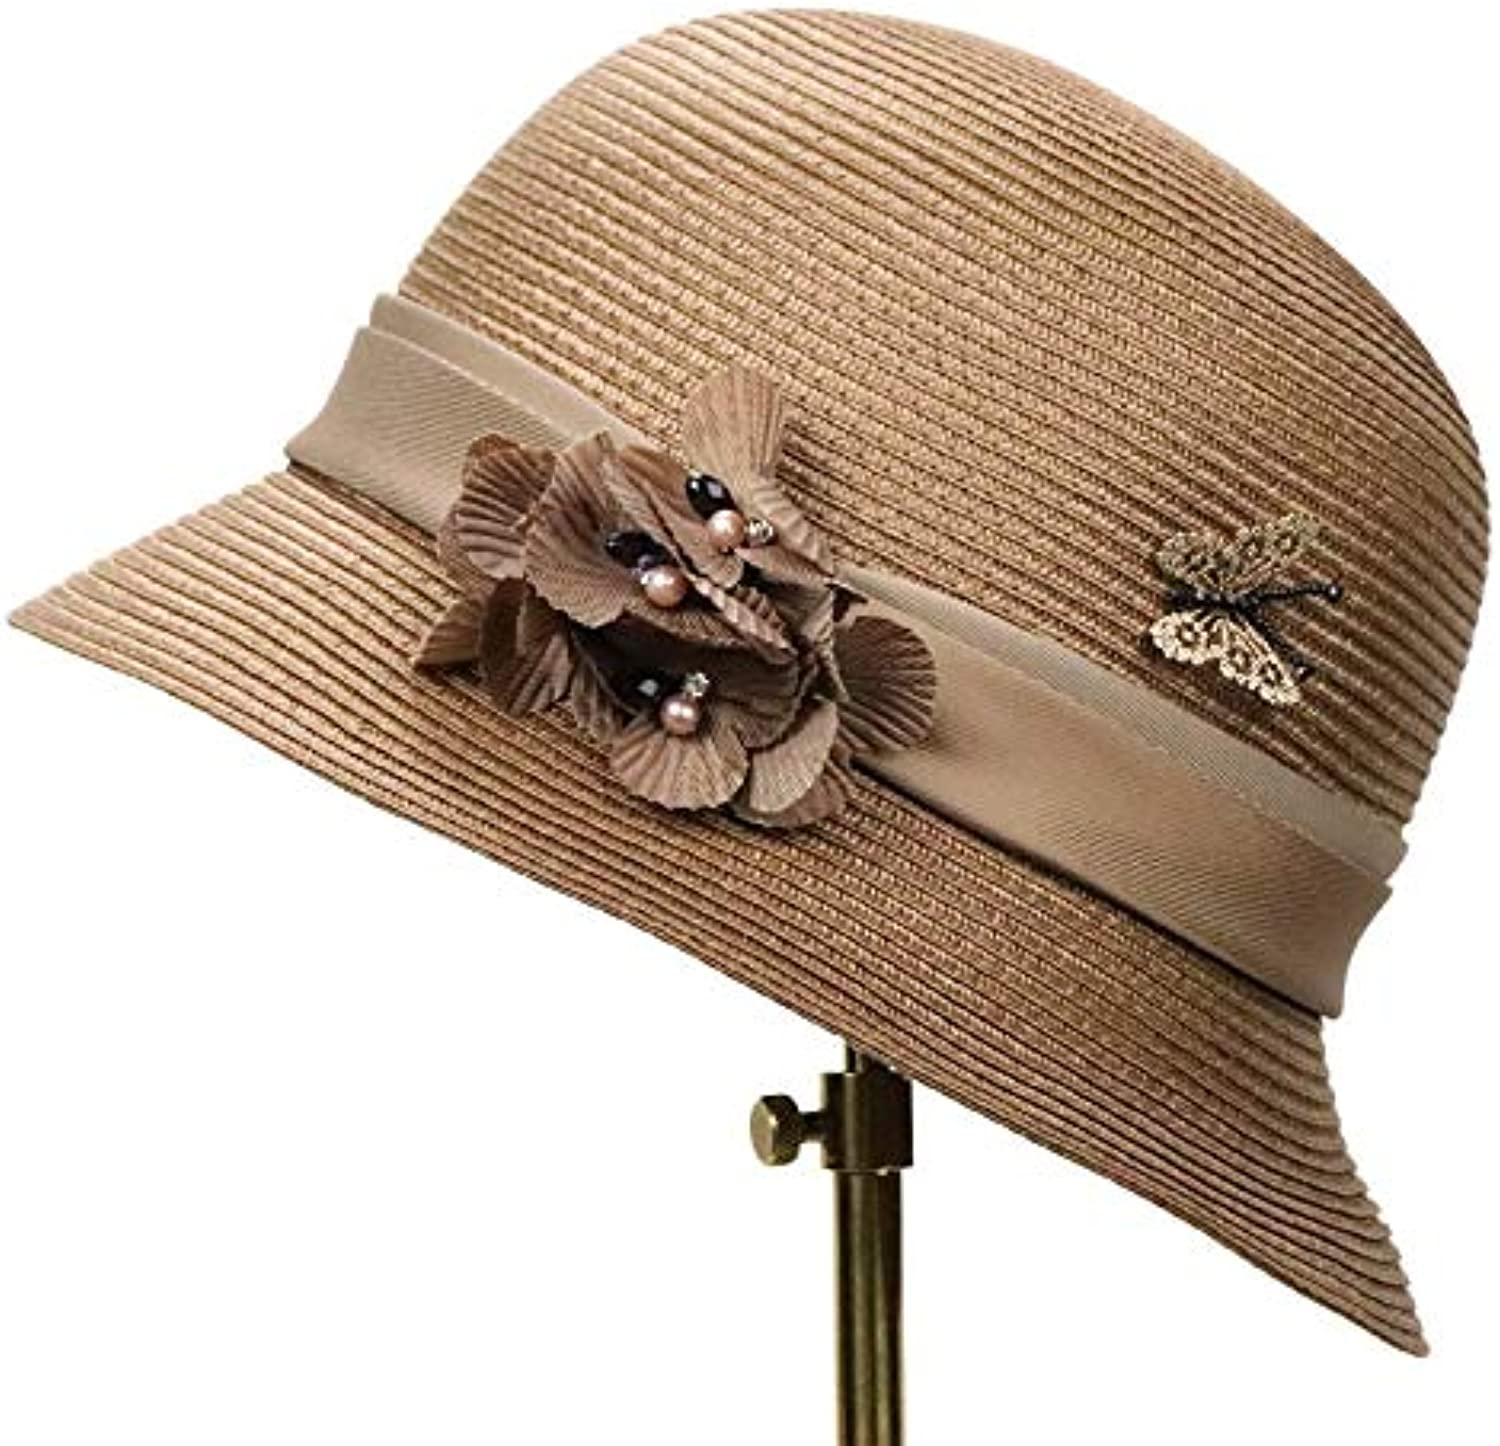 Summer Folding Beach Sunshade Straw Hat Ms. Linen Table PP Material Straw Hat Outdoor Leisure Out Cap (color   Coffee)